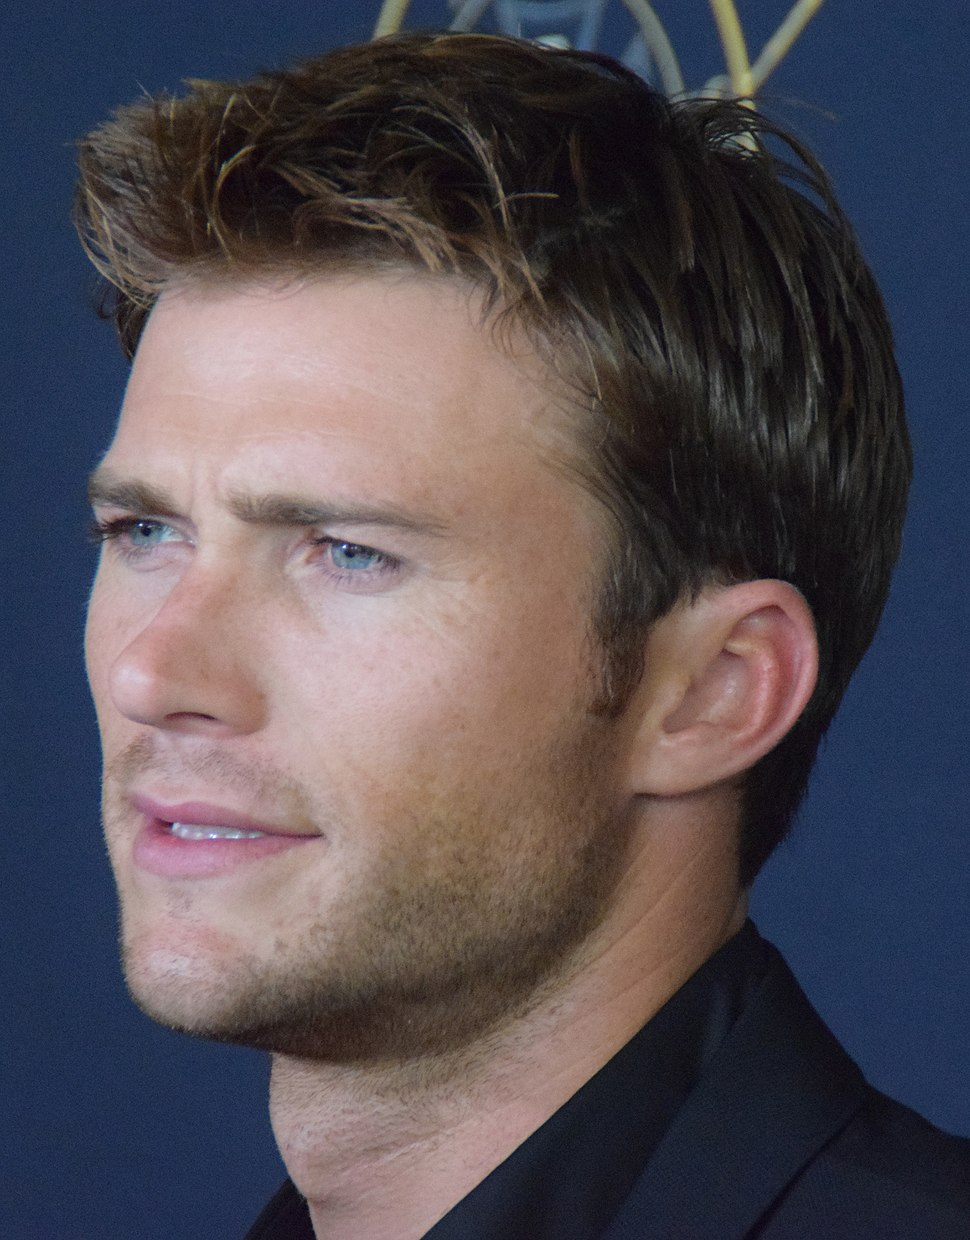 Scott Eastwood 52nd Annual Publicists Awards - Feb 2015 (cropped)